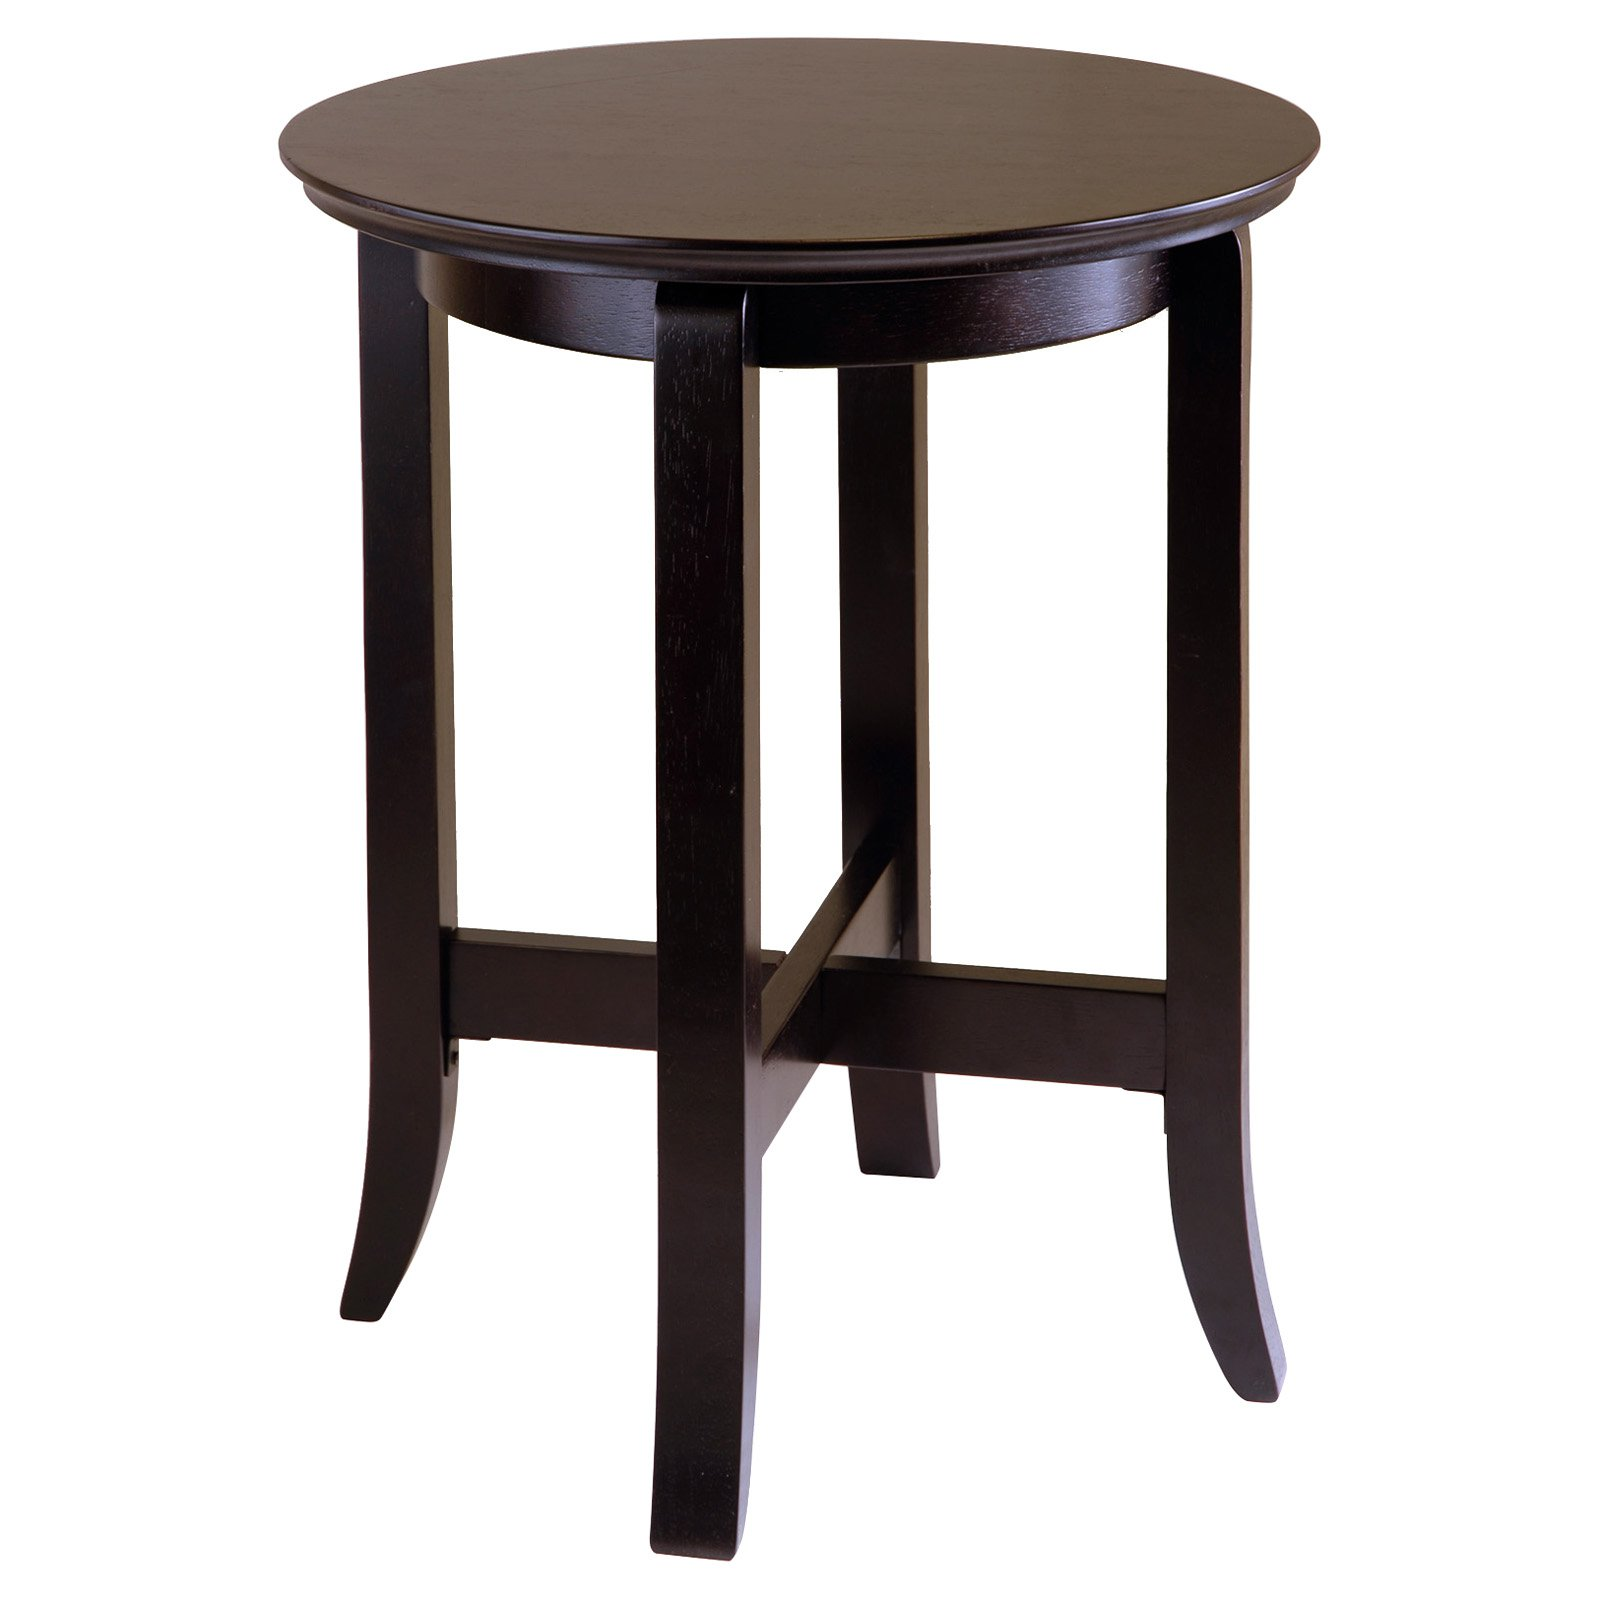 winsome wood toby round accent table espresso finish end riverside furniture aberdeen coffee brown sofa with orange accents thomasville handles uttermost tables rustic blinds